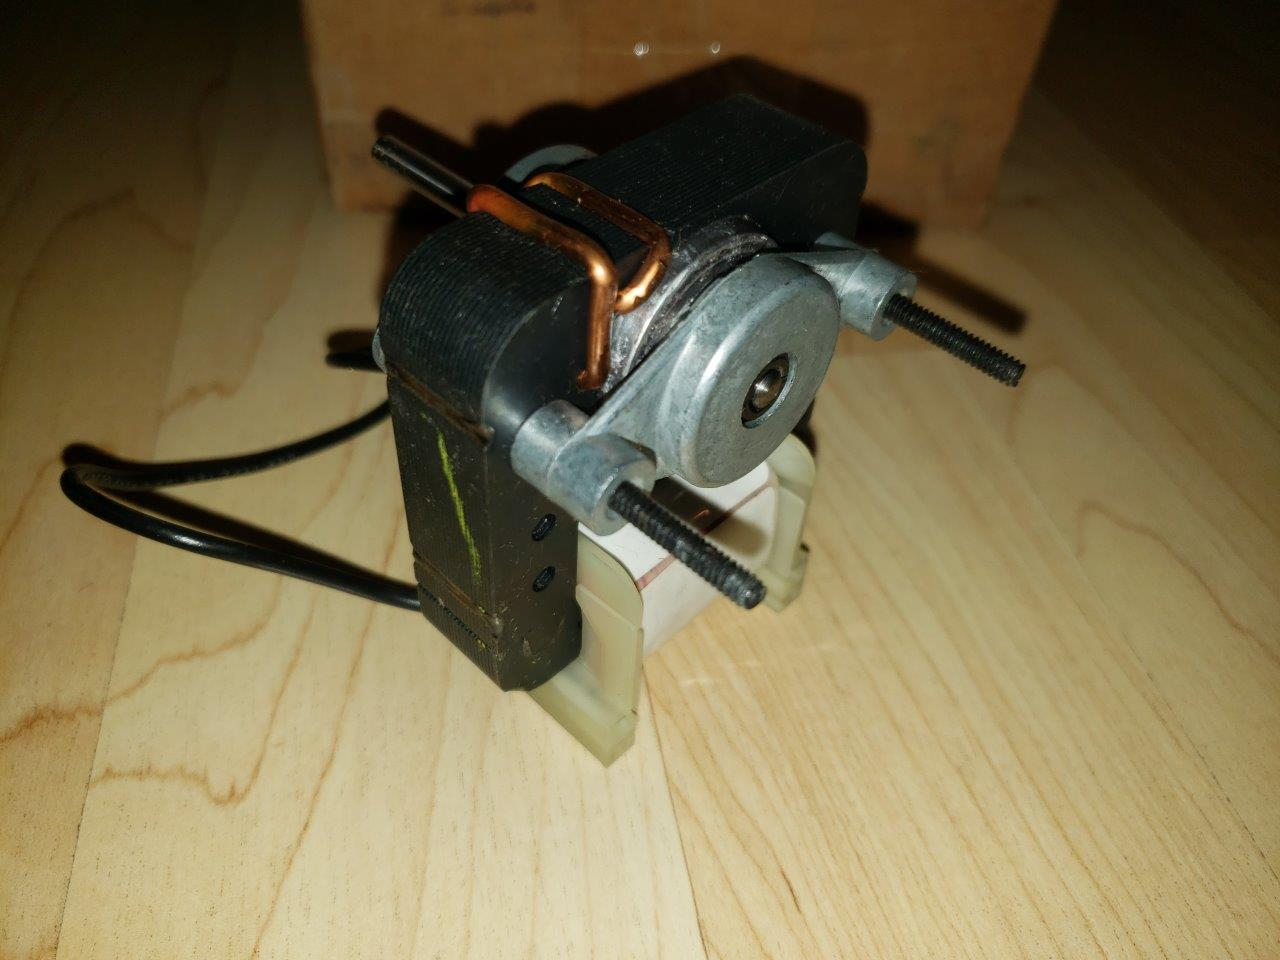 1/150 HP, 120 Volts, 3000 RPM, Fasco K670 C-Frame Motor, 1 Speed, 0.61 Amps, For Vent Fan OAO Enclosure, CCWSE Rotation, Sleeve Bearing